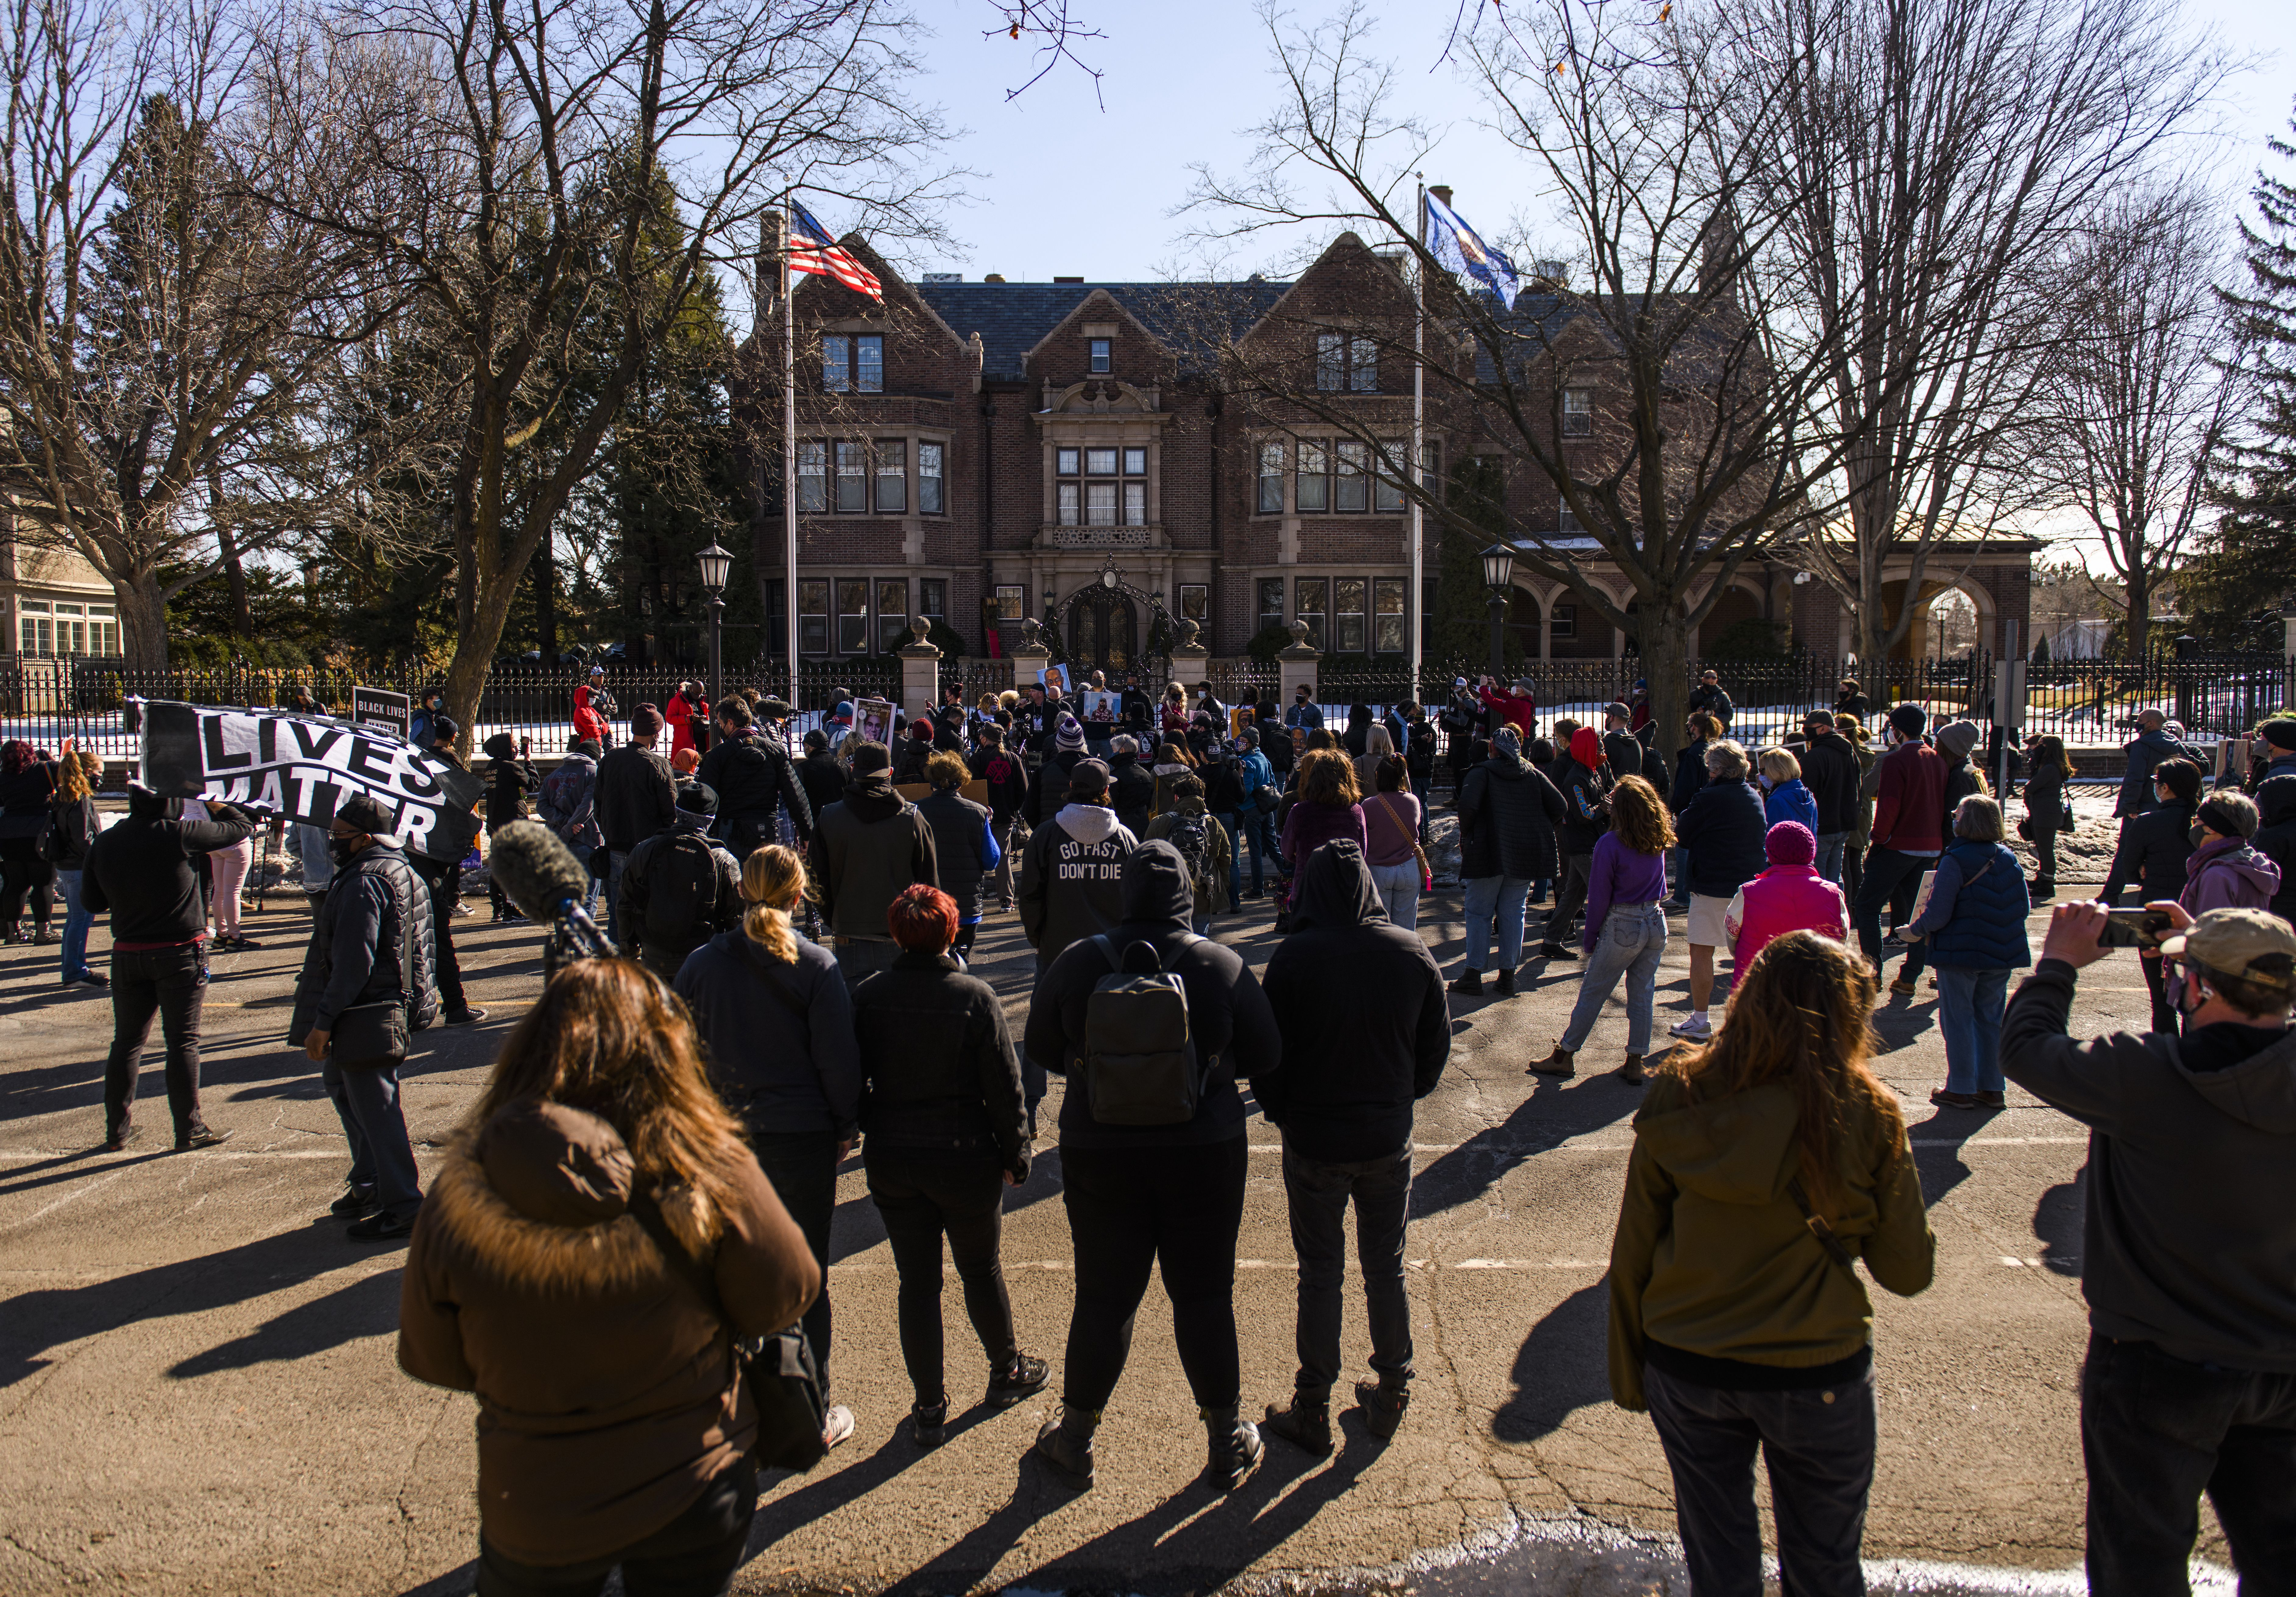 People gather for a protest demonstration outside the Governors Mansion on March 6, 2021 in St. Paul, Minnesota.